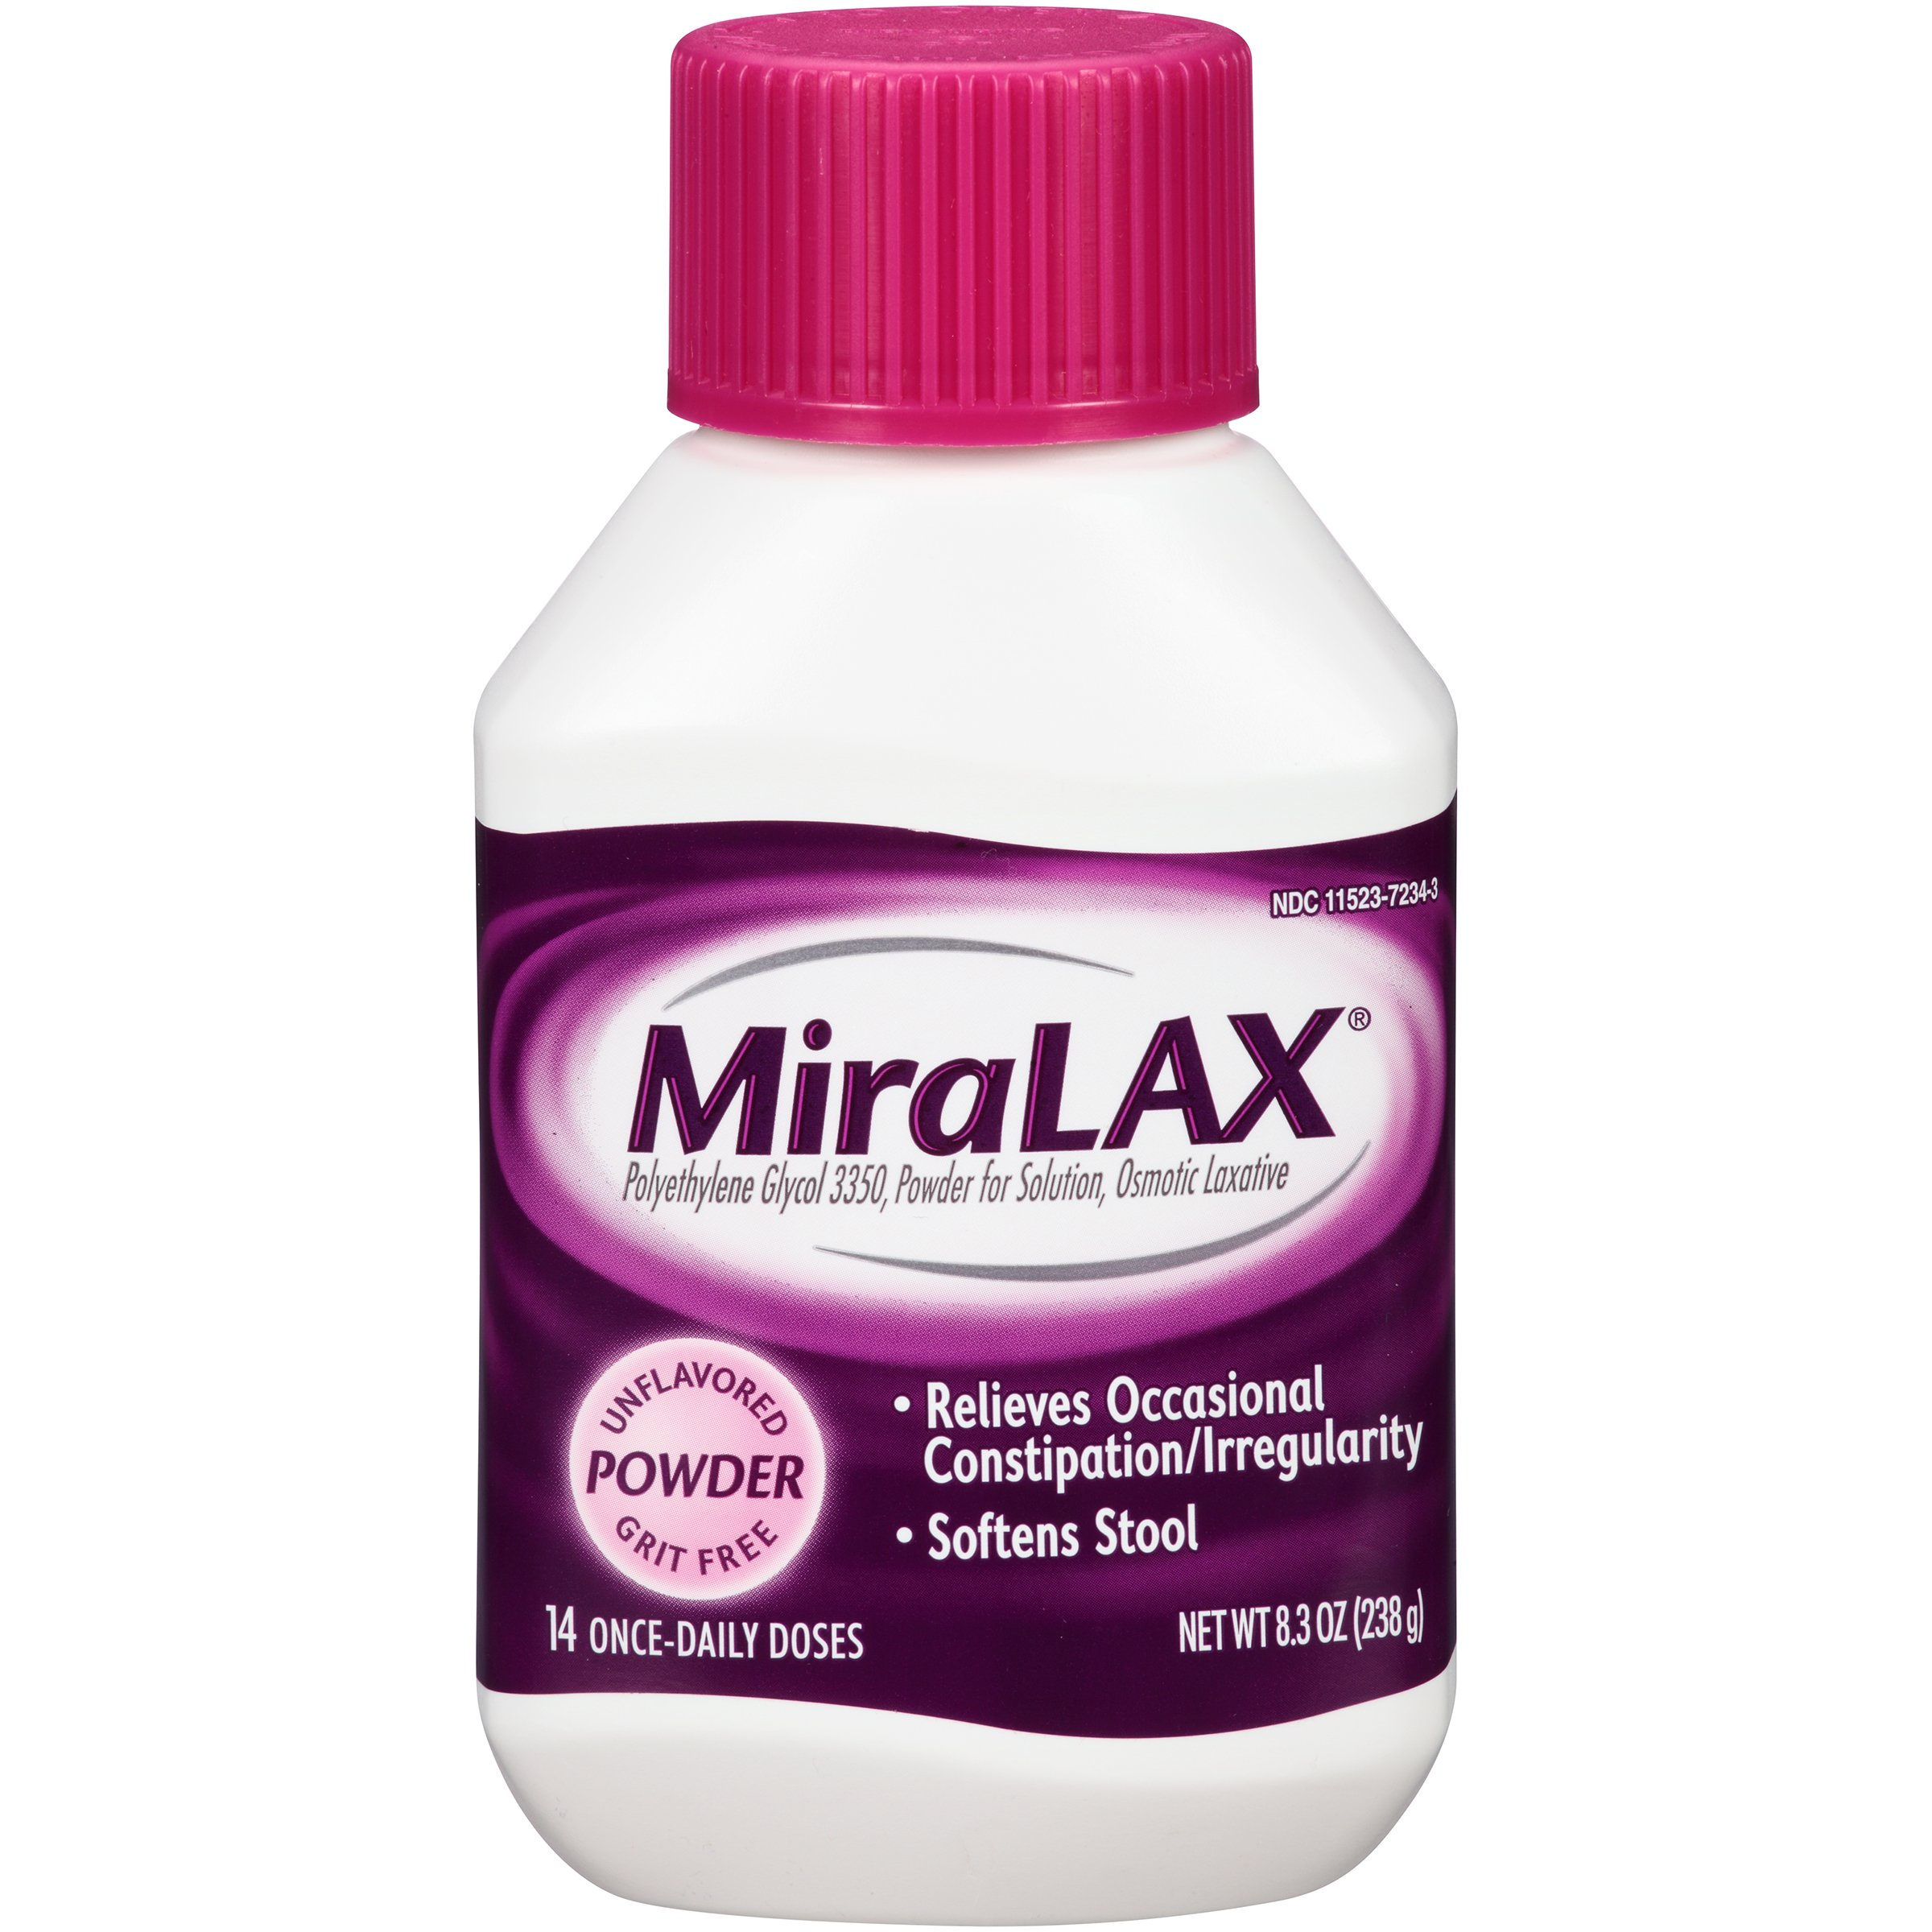 MiraLAX laxative powder, 14 doses, 8.3 Ounce (Pack of 12)